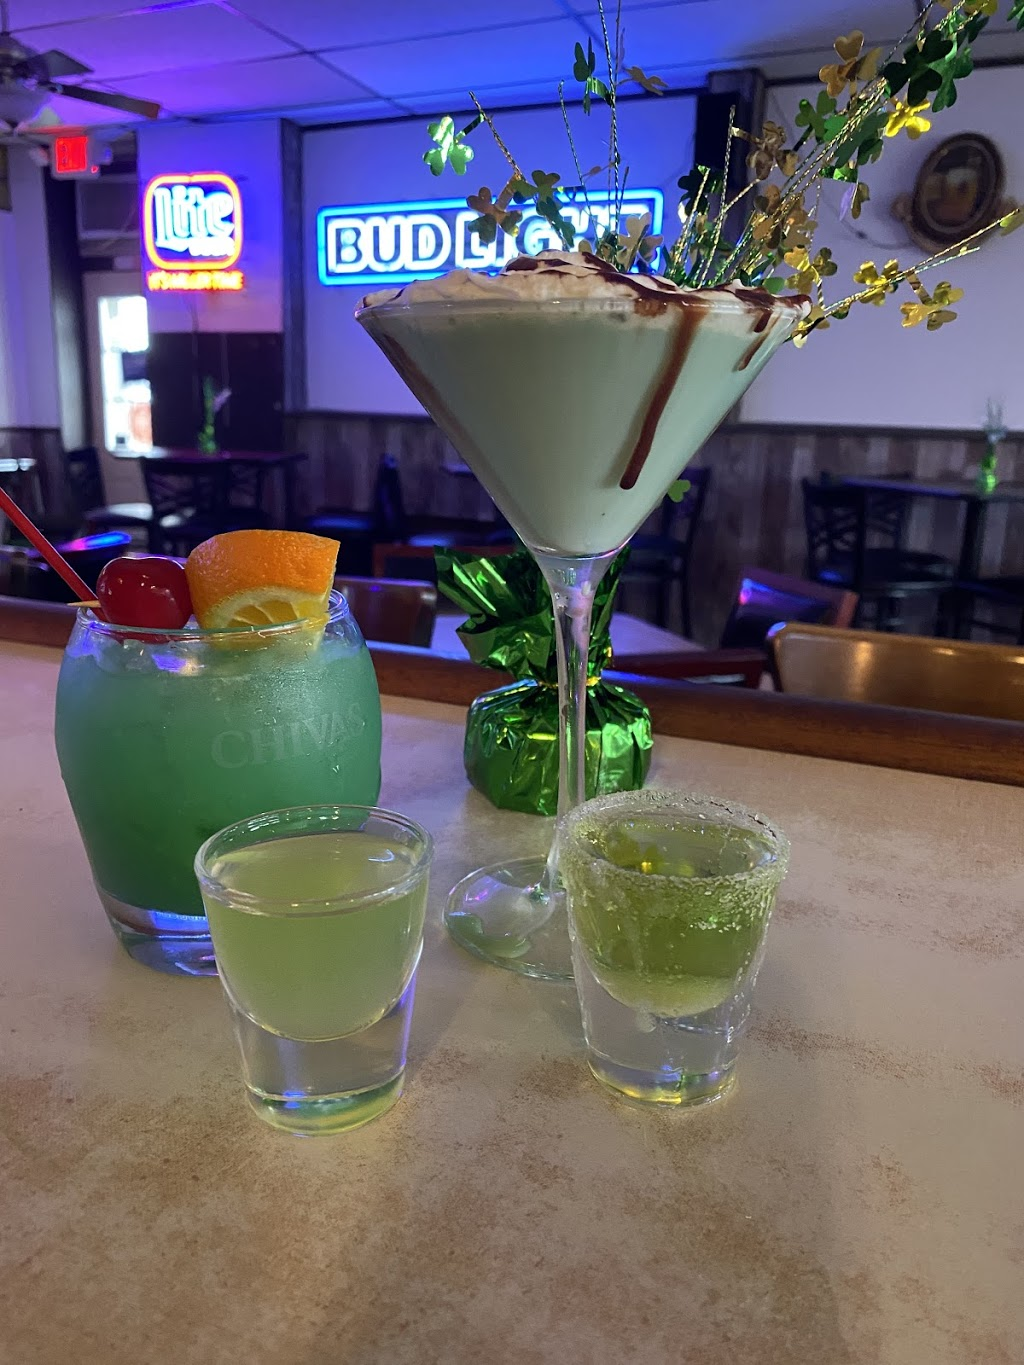 The office bar, grill, pizza too!   restaurant   101 W Station St, St Anne, IL 60964, USA   8154225095 OR +1 815-422-5095